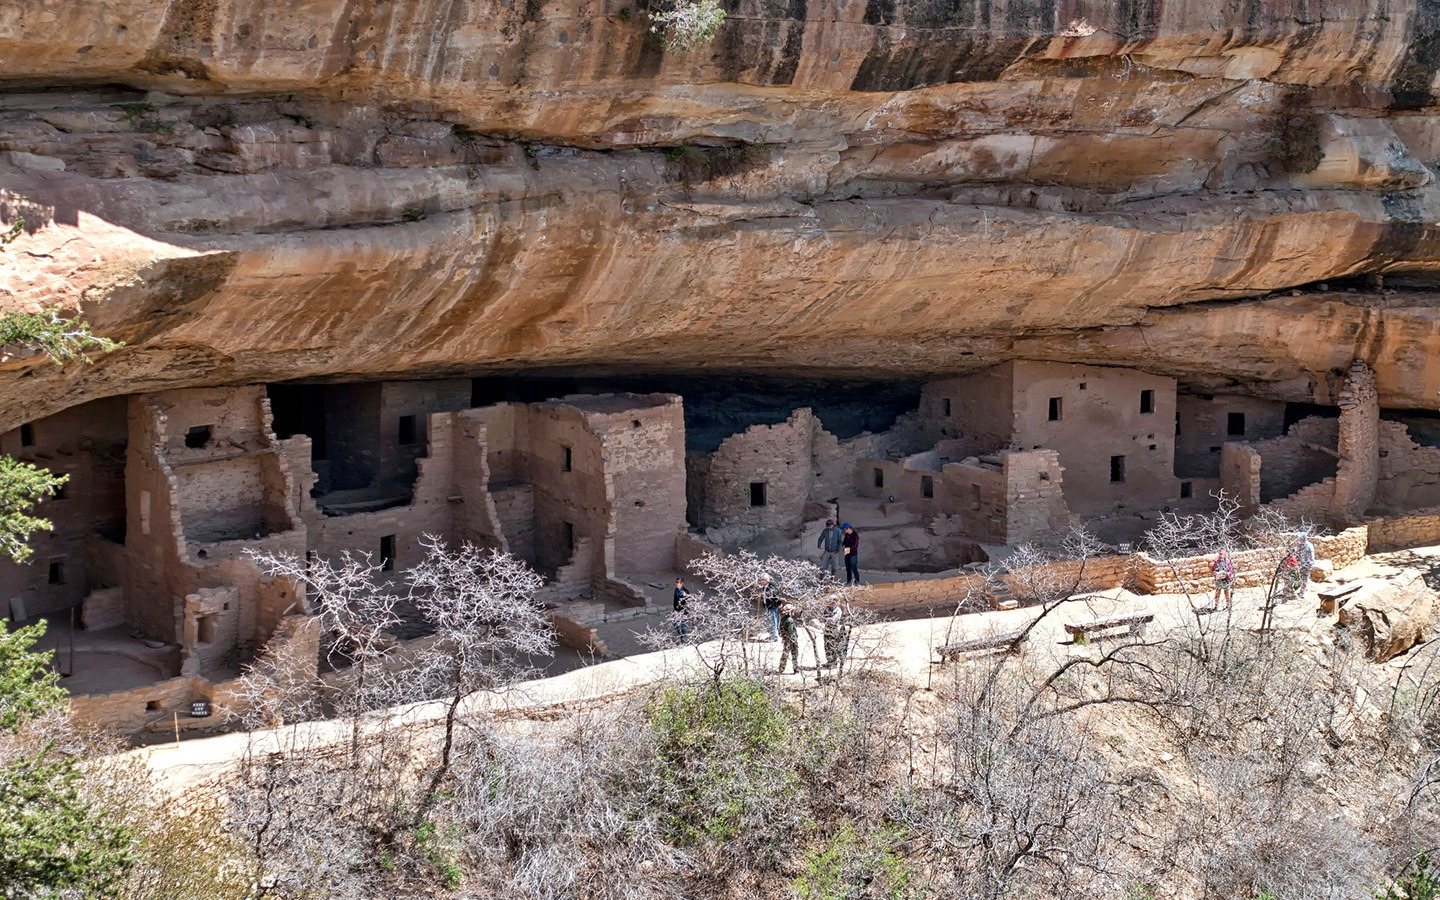 Cliff houses at Mesa Verde National Park, Colorado, USA